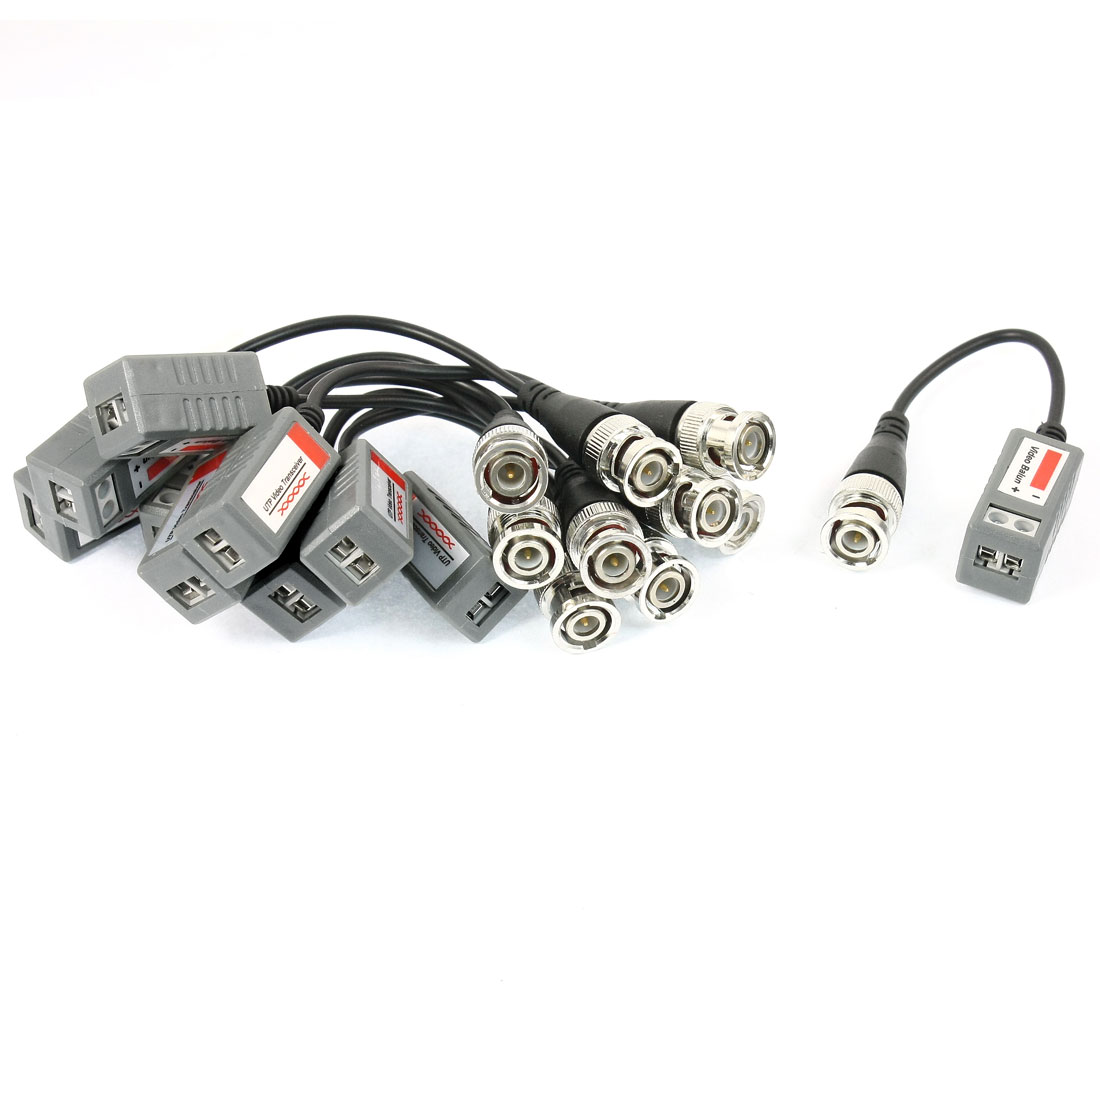 5Pairs BNC Male CCTV Camera Via Twisted UTP CAT5 Video Balun Transceiver